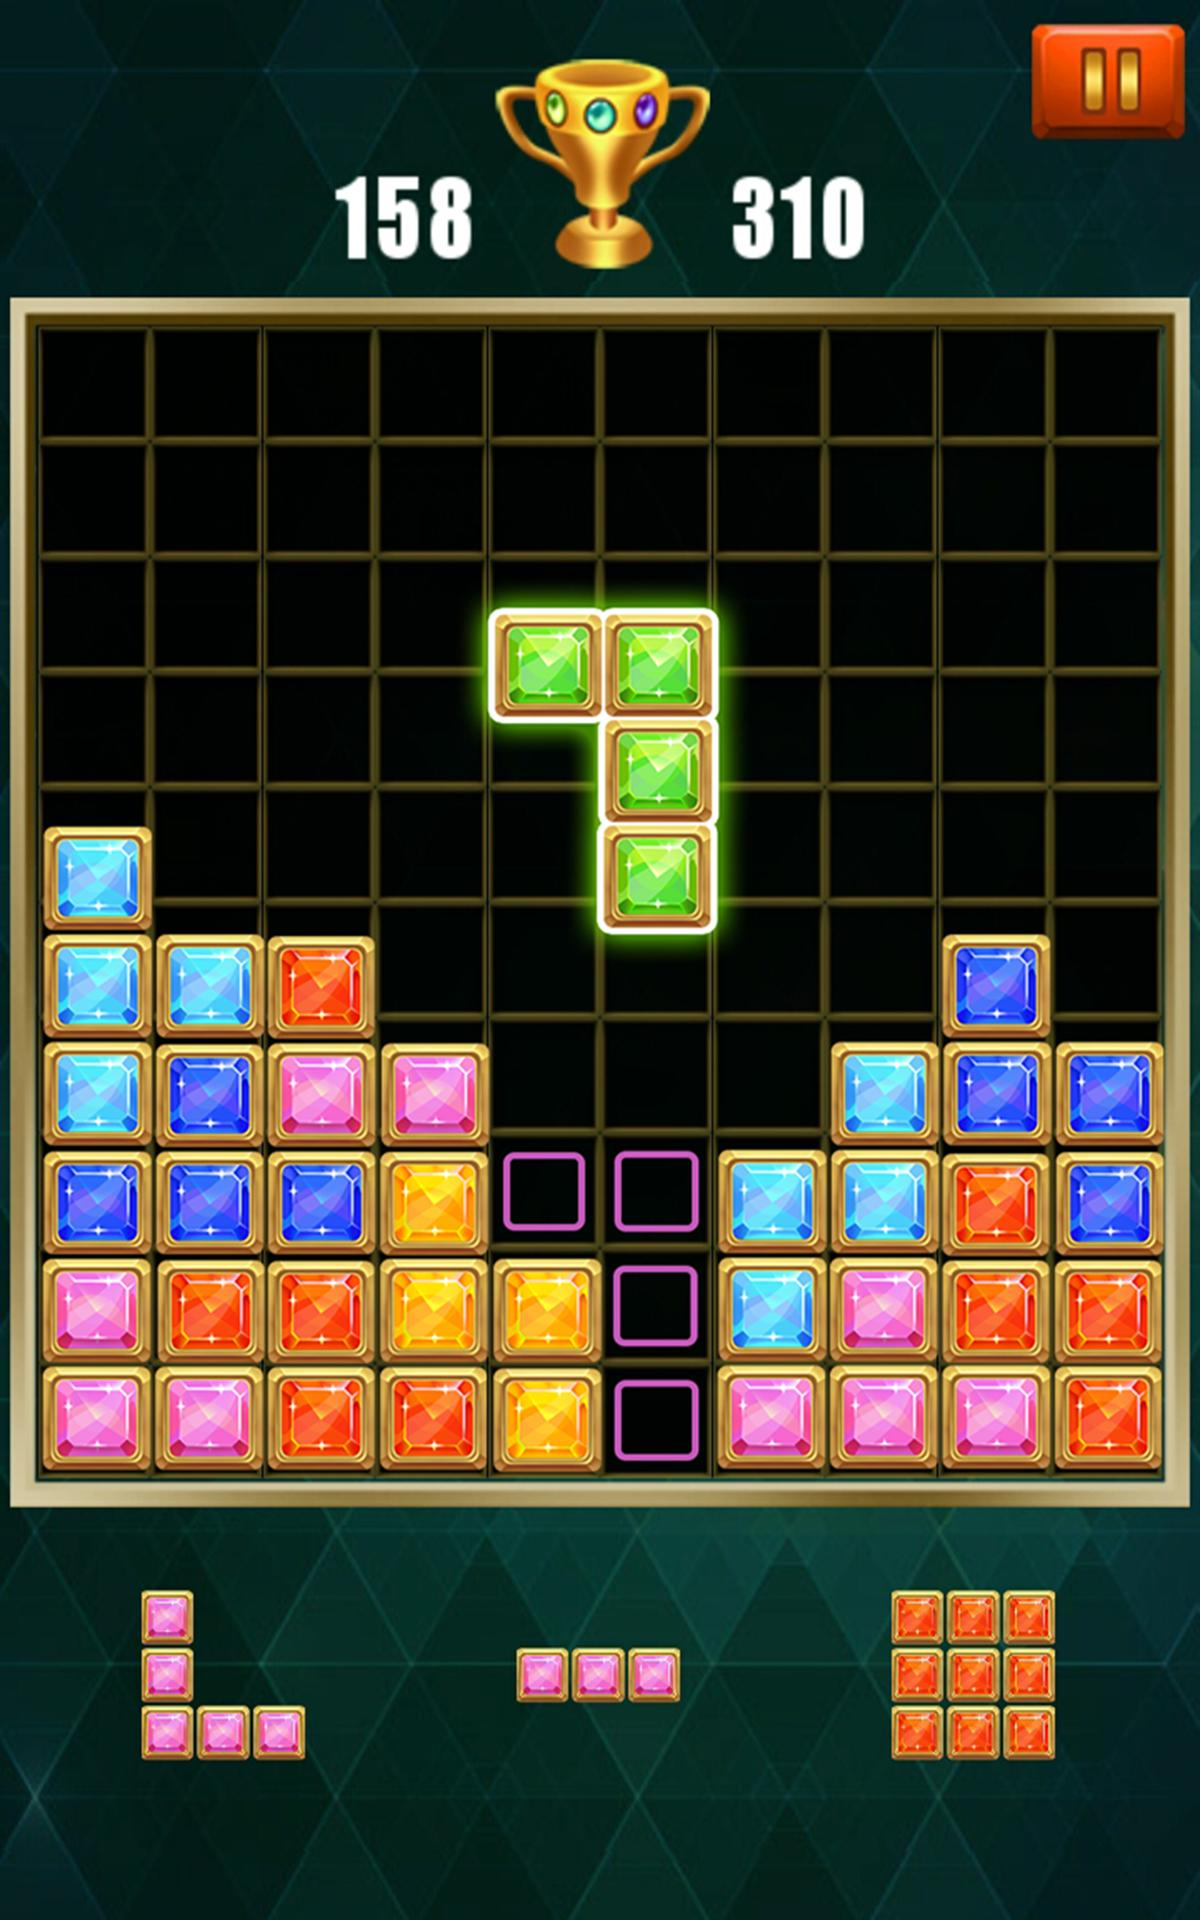 Classic Block Puzzle Game For Android Apk Download